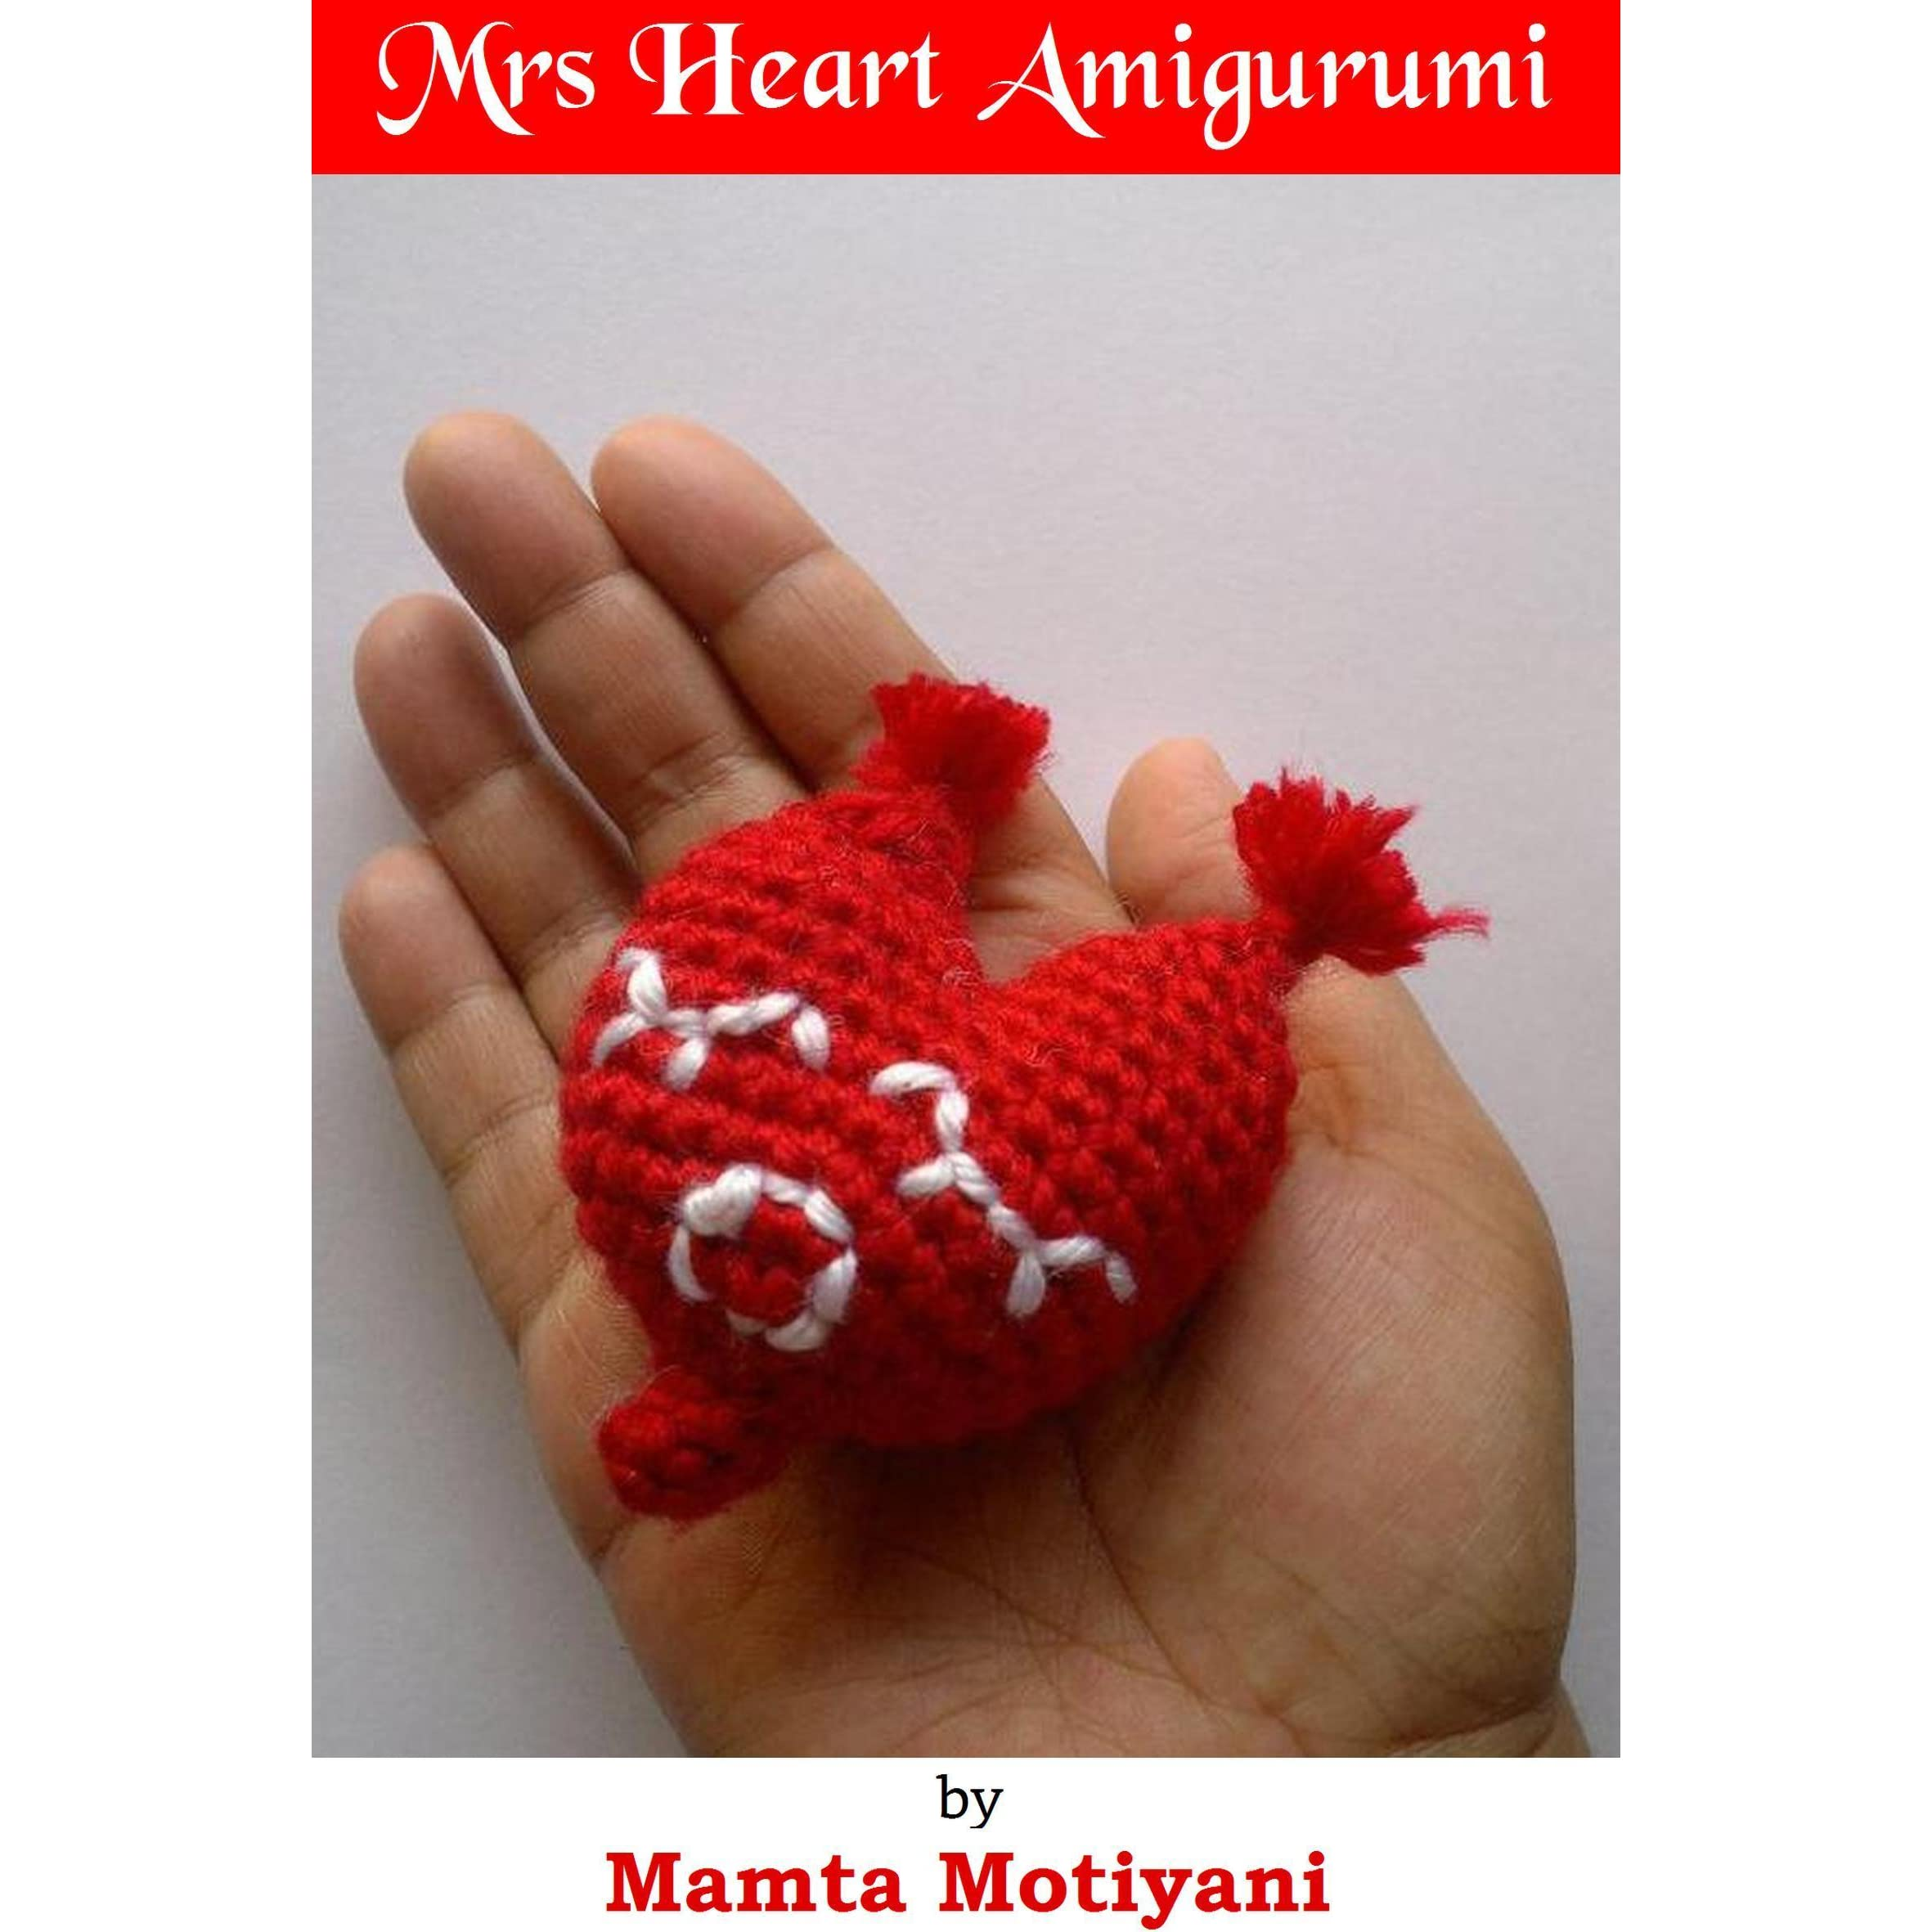 Red Heart Amigurumi Yarn-bird Makes 2 Angry Bird Figures Knit ... | 2362x2362